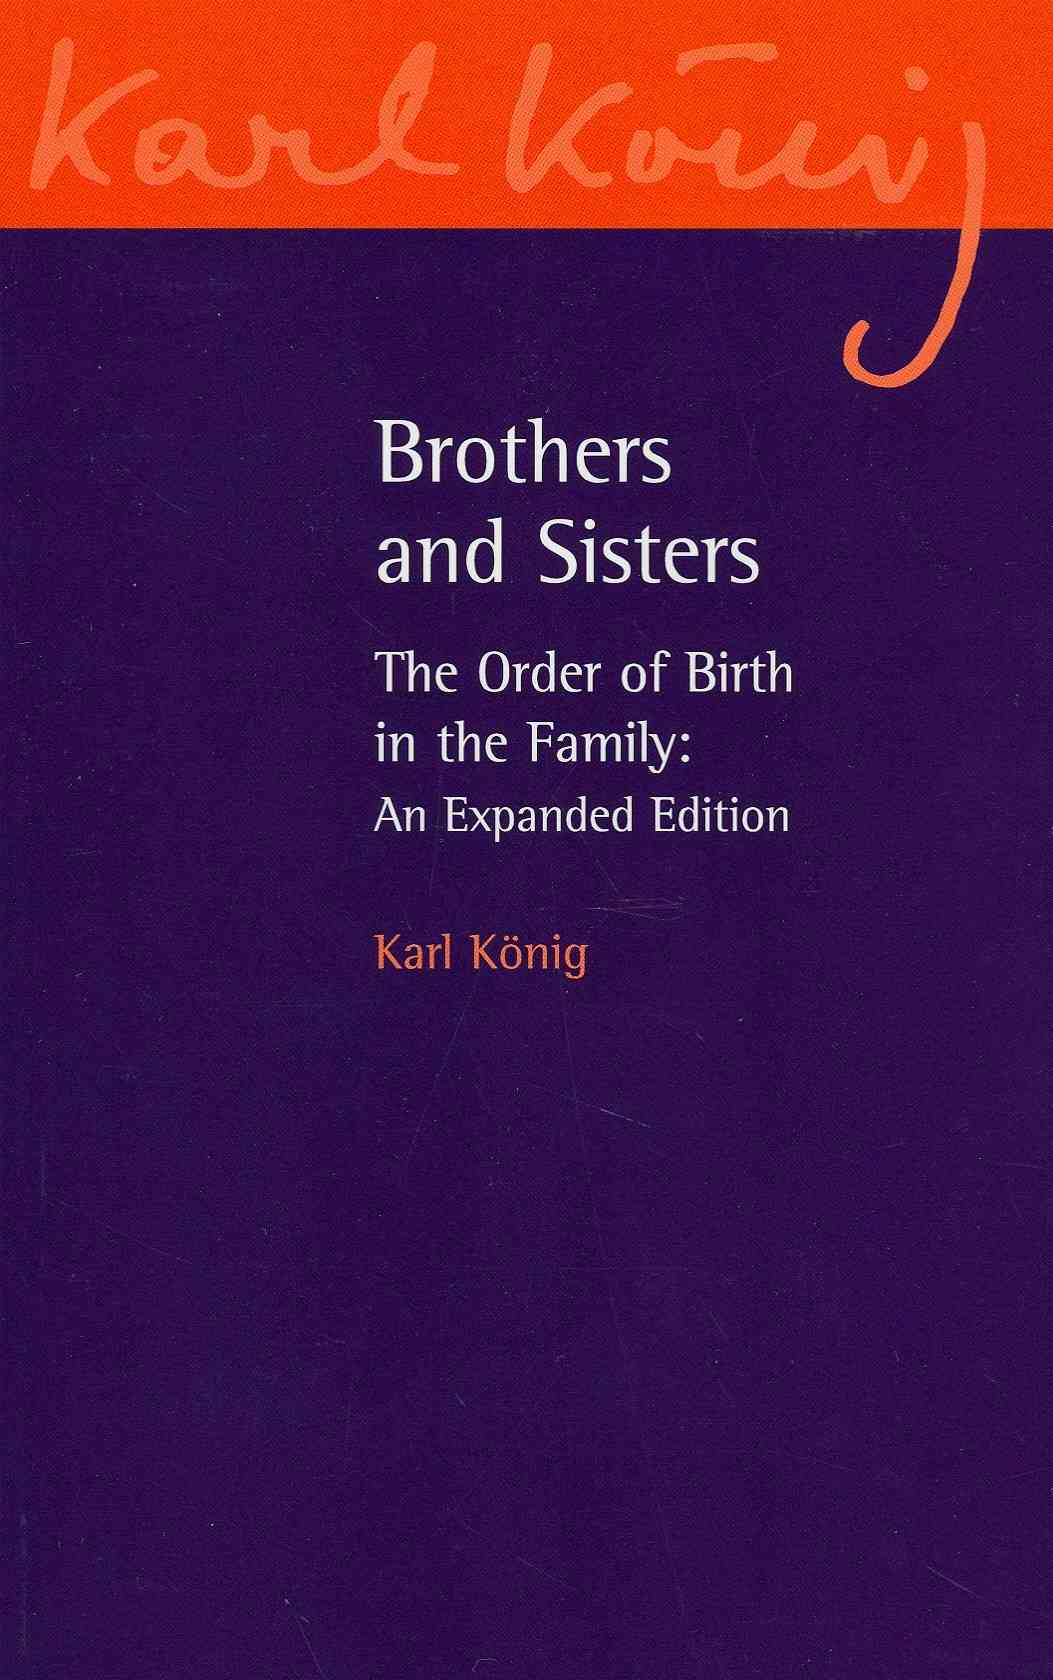 Floris Books Brothers and Sisters: The Order of Birth in the Family (Expanded Edition) by Konig, Karl [Paperback] at Sears.com